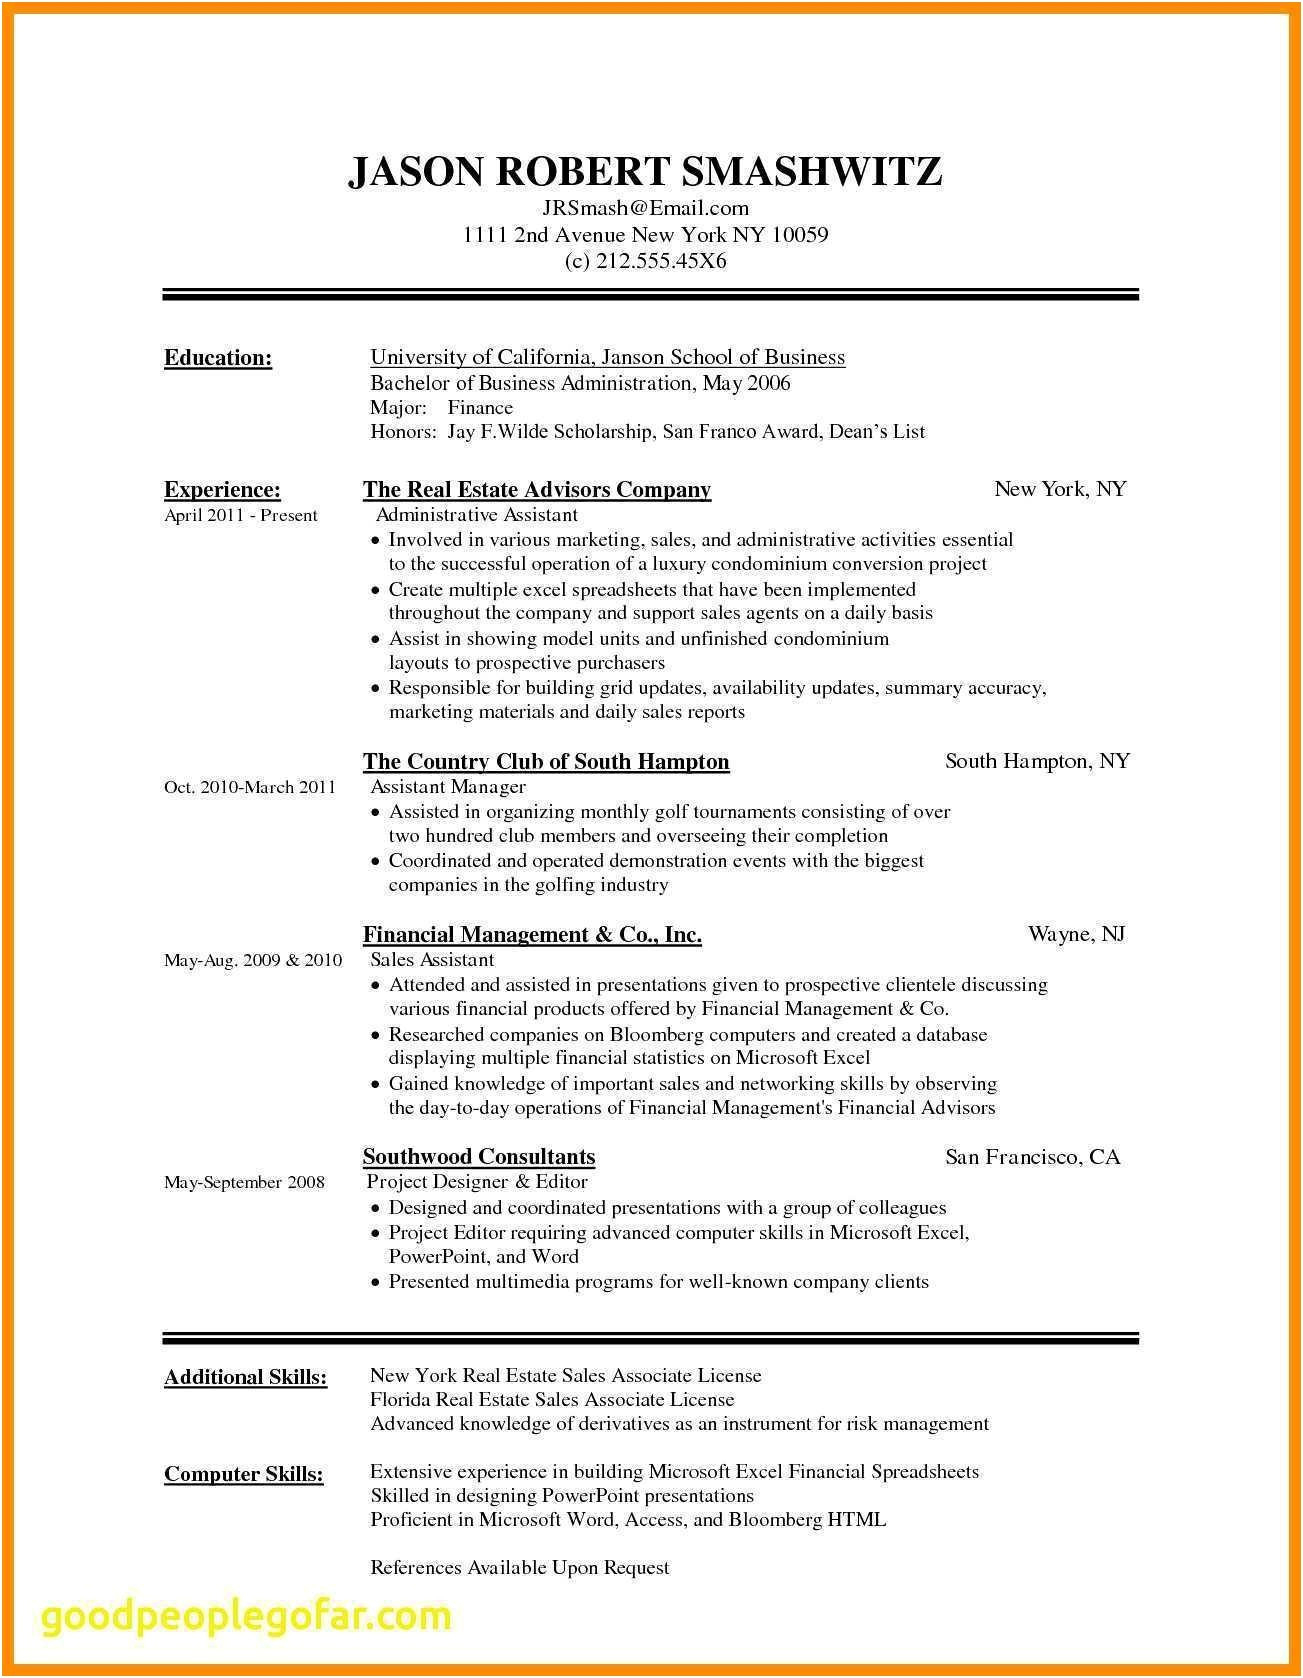 sample chronological resume template Collection-Lovely Chronological Resume Sample American Resume Sample New Student Chronological Resume Template Lovely Pr Resume 1-q